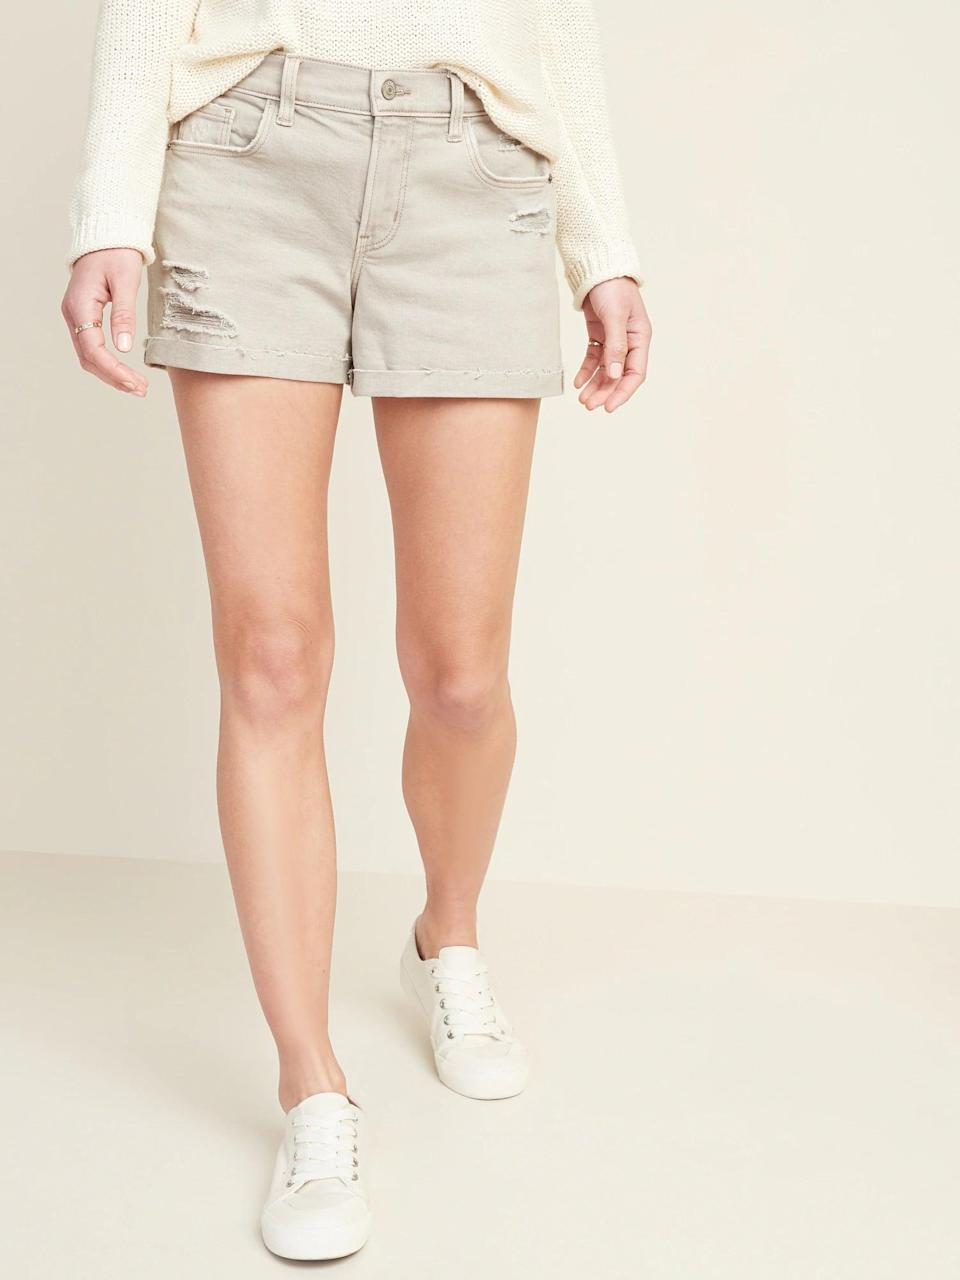 <p>The <span>Old Navy Mid-Rise Distressed Boyfriend Beige-Color Jean Shorts</span> ($15, originally $30) look equally cute with a tucked tank during the day as they would with a lightweight sweater at night.</p>